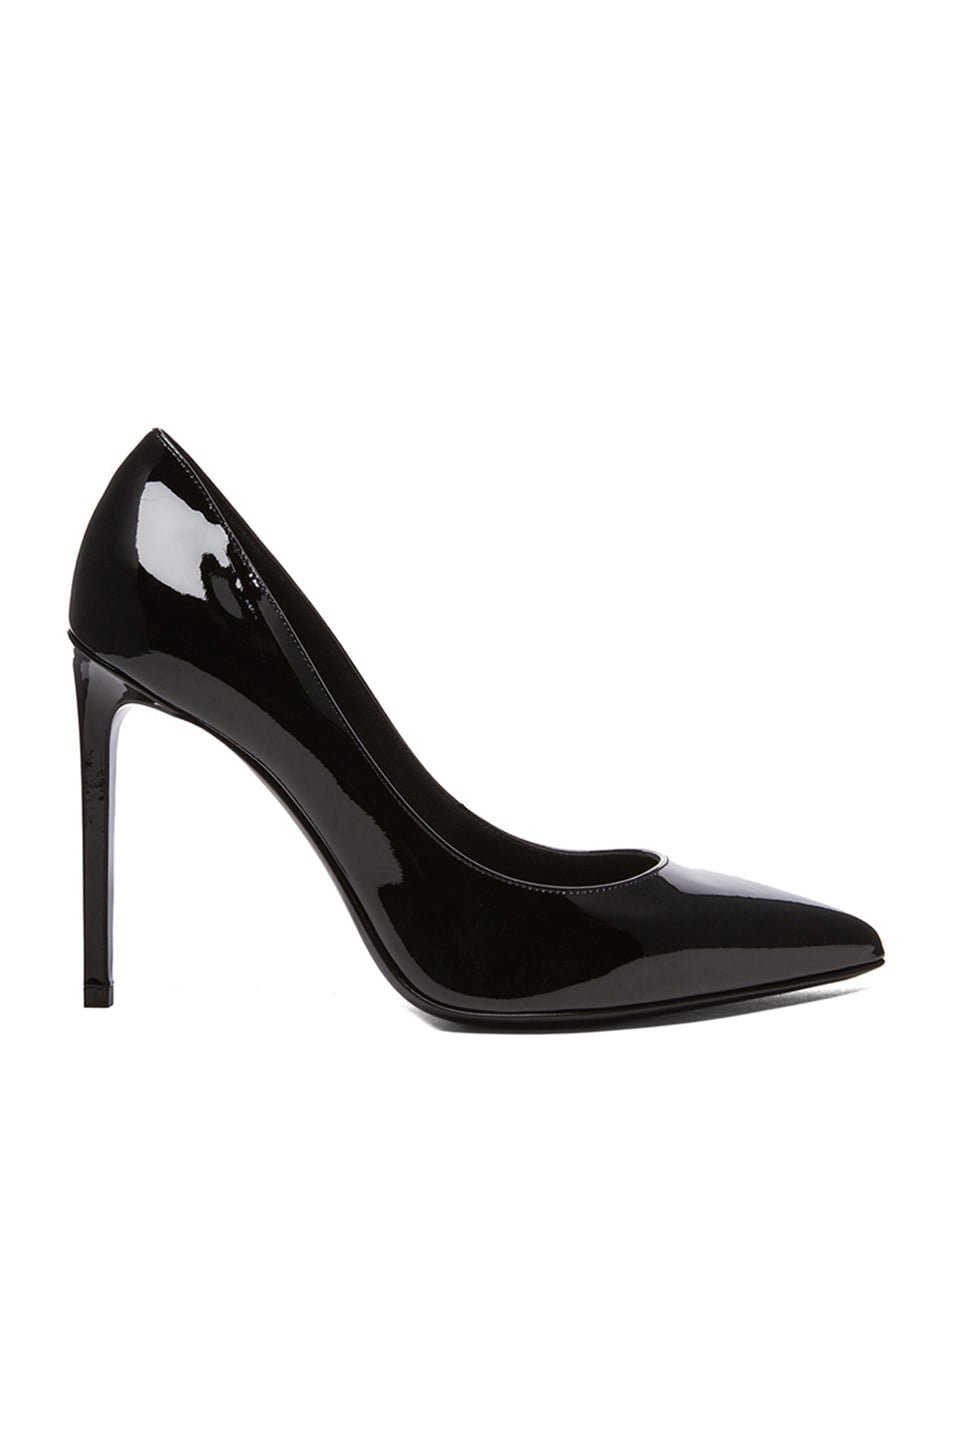 Image 1 of Saint Laurent Patent Leather Paris Skinny Pumps in Black